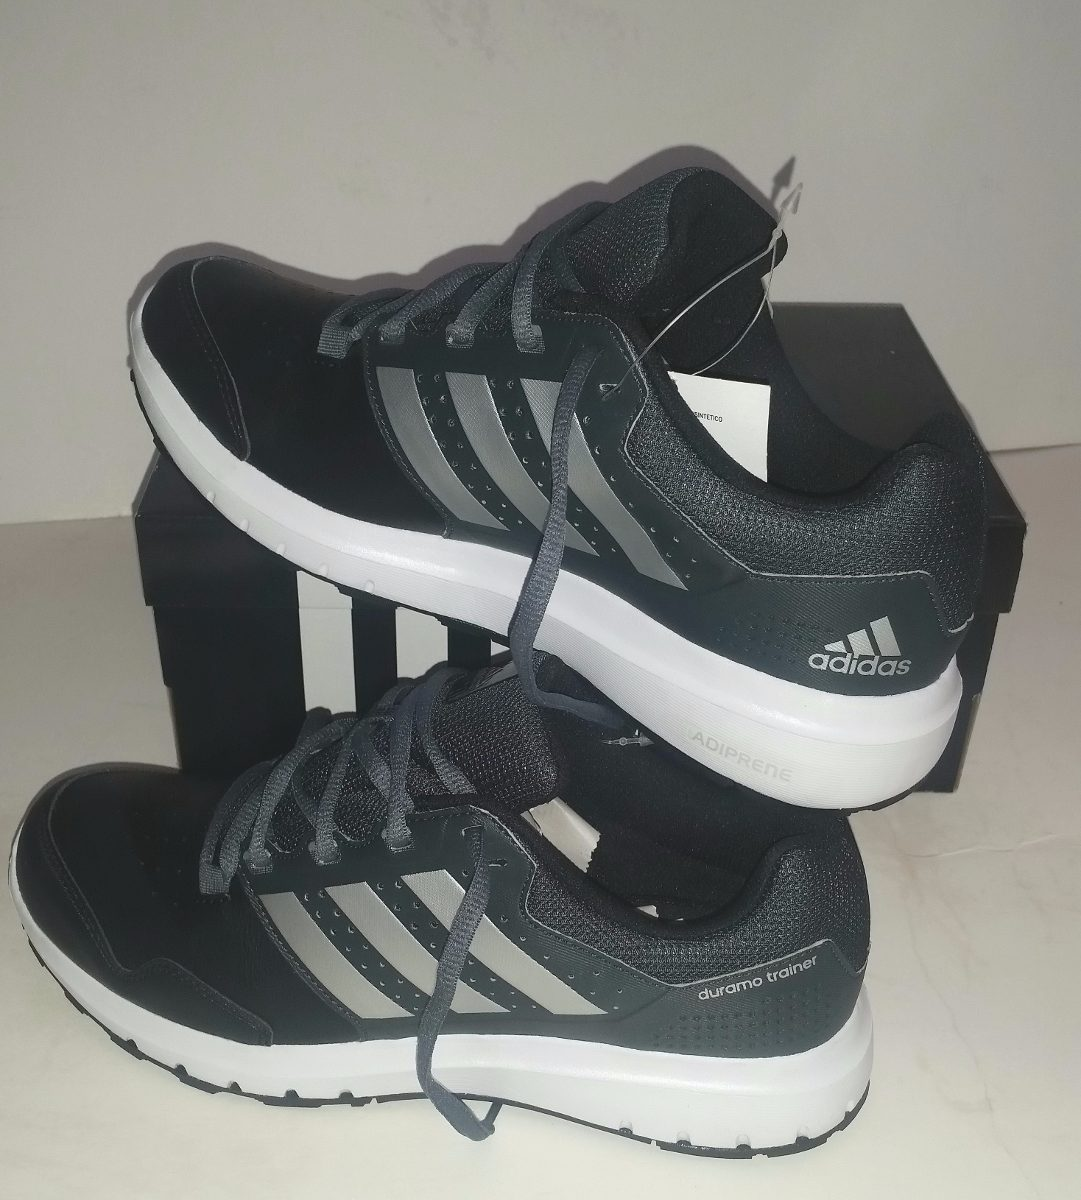 zapatillas adidas superstar arequipa